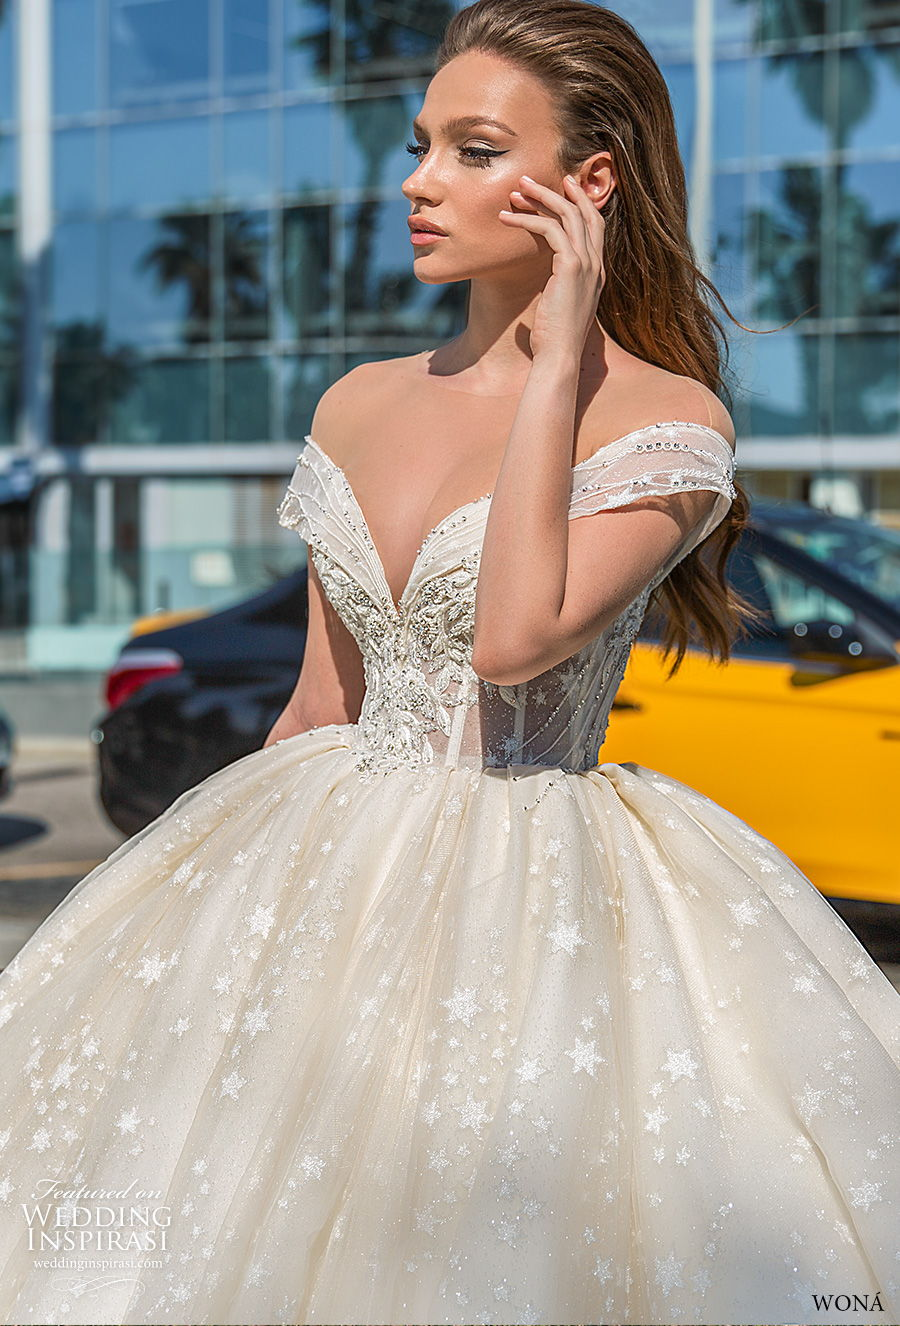 wona 2020 diva bridal off the shoulder sweetheart neckline full embellishment princess ball gown a  lne wedding dress mid back chapel train (4) zv